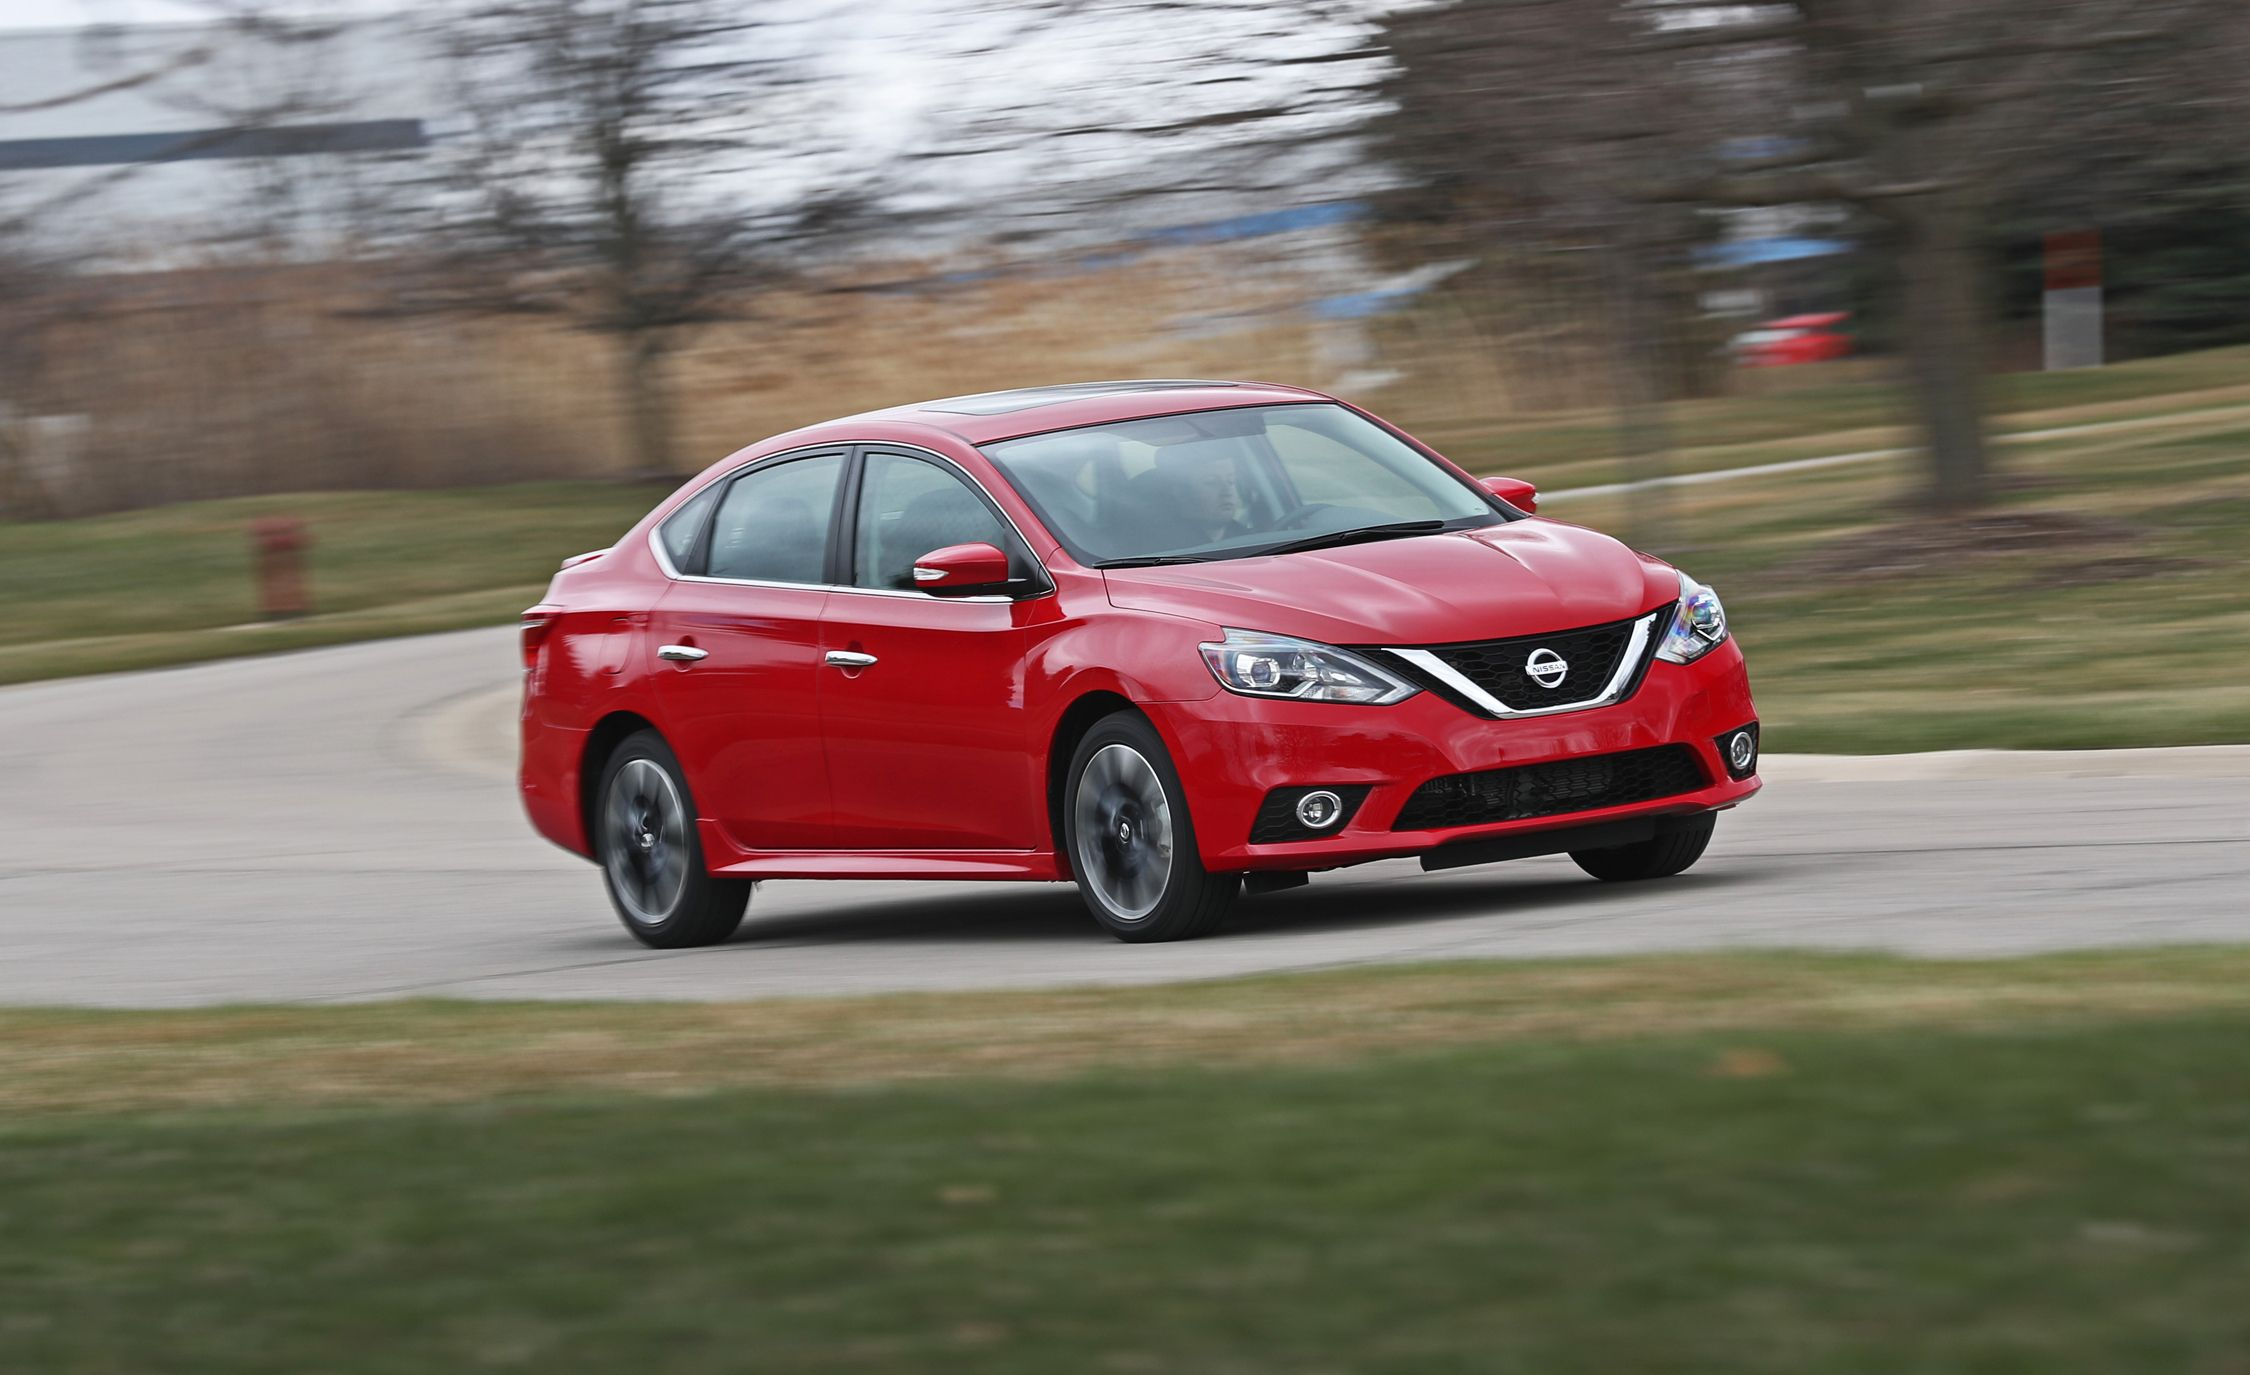 2018 Nissan Sentra Sr Turbo Manual Test Nismo Punch In An Package Review Car And Driver